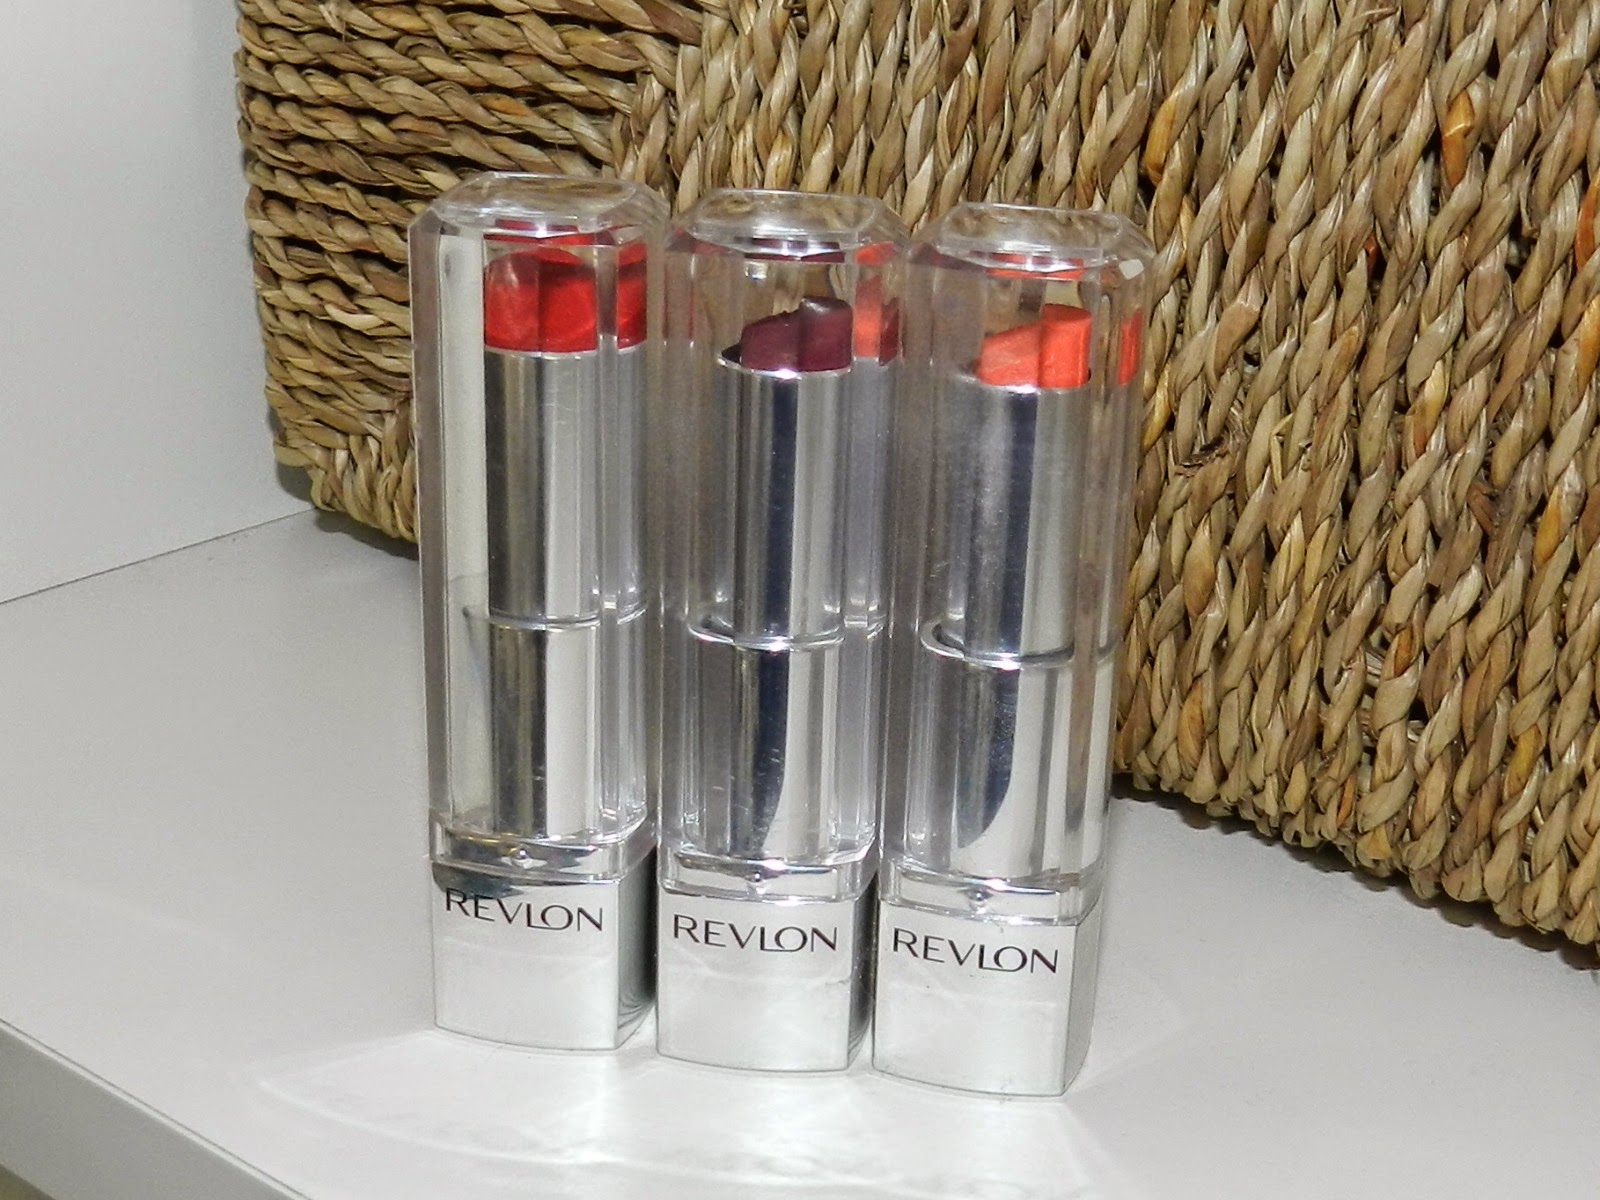 Life Is Worth The Fight Lipstick Spree Revlon Ultra Hd No840 Pointsettia I Brought 6 Lipsticks Altogether They Were 3 For 2 But Are Of Different Formulations We Have Lip First And Then